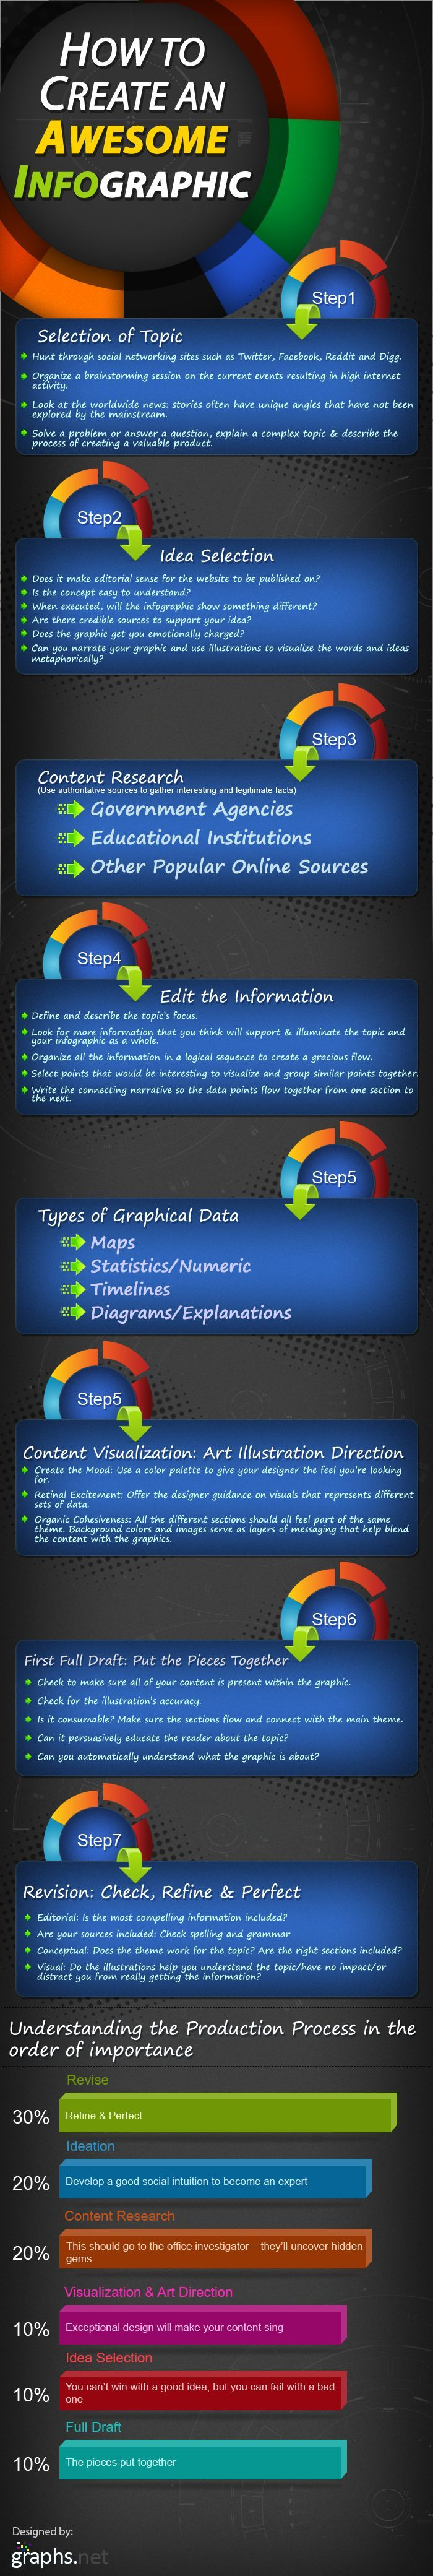 How to create infographic